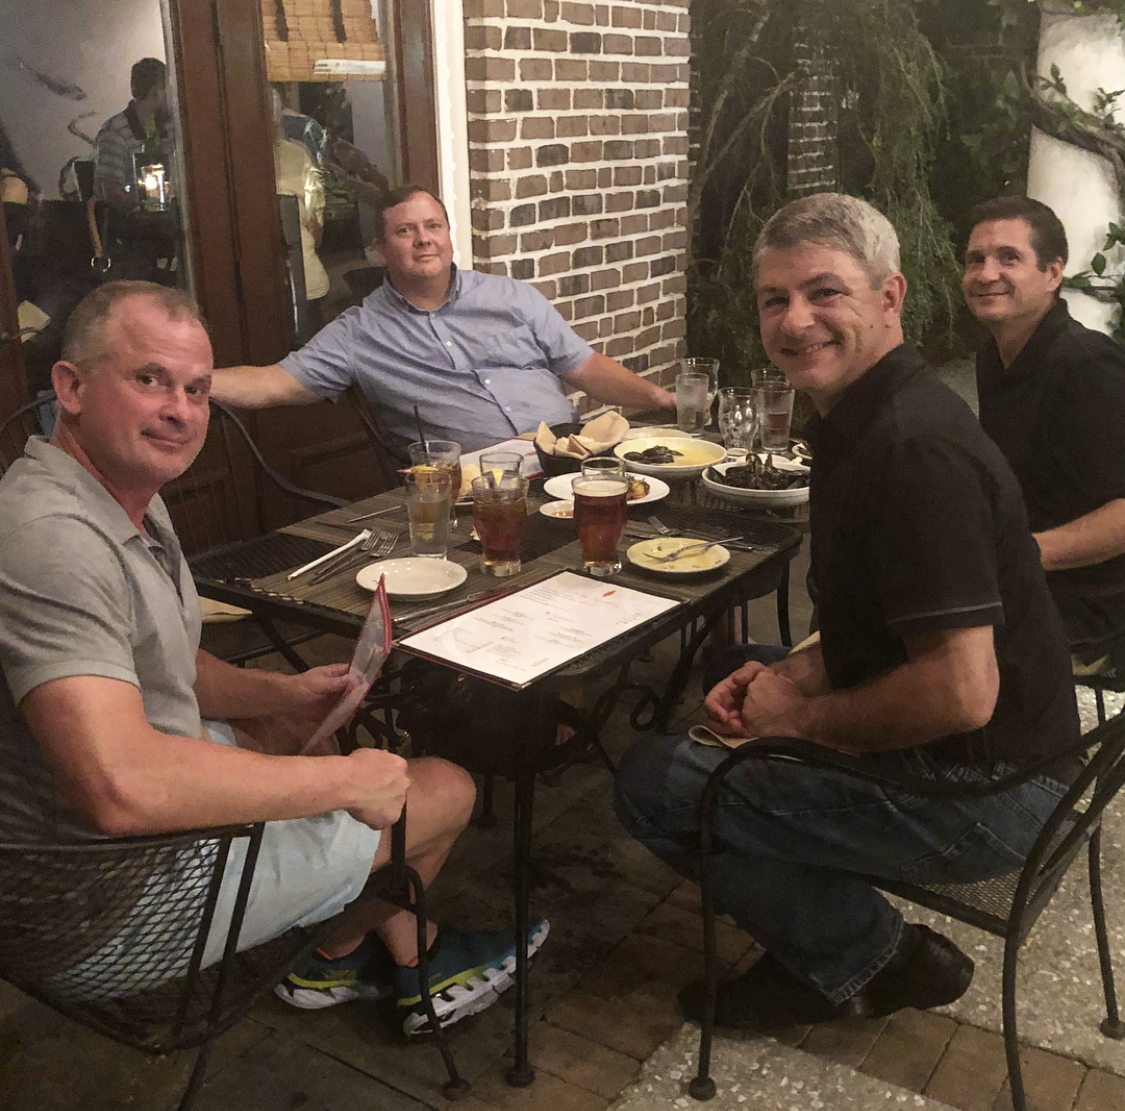 Team Bravas enjoying dinner at Sermet's in Daniel Island, South Carolina. Jay Noce, Tyler Pierson, Carmen Amici and Chris Baker.